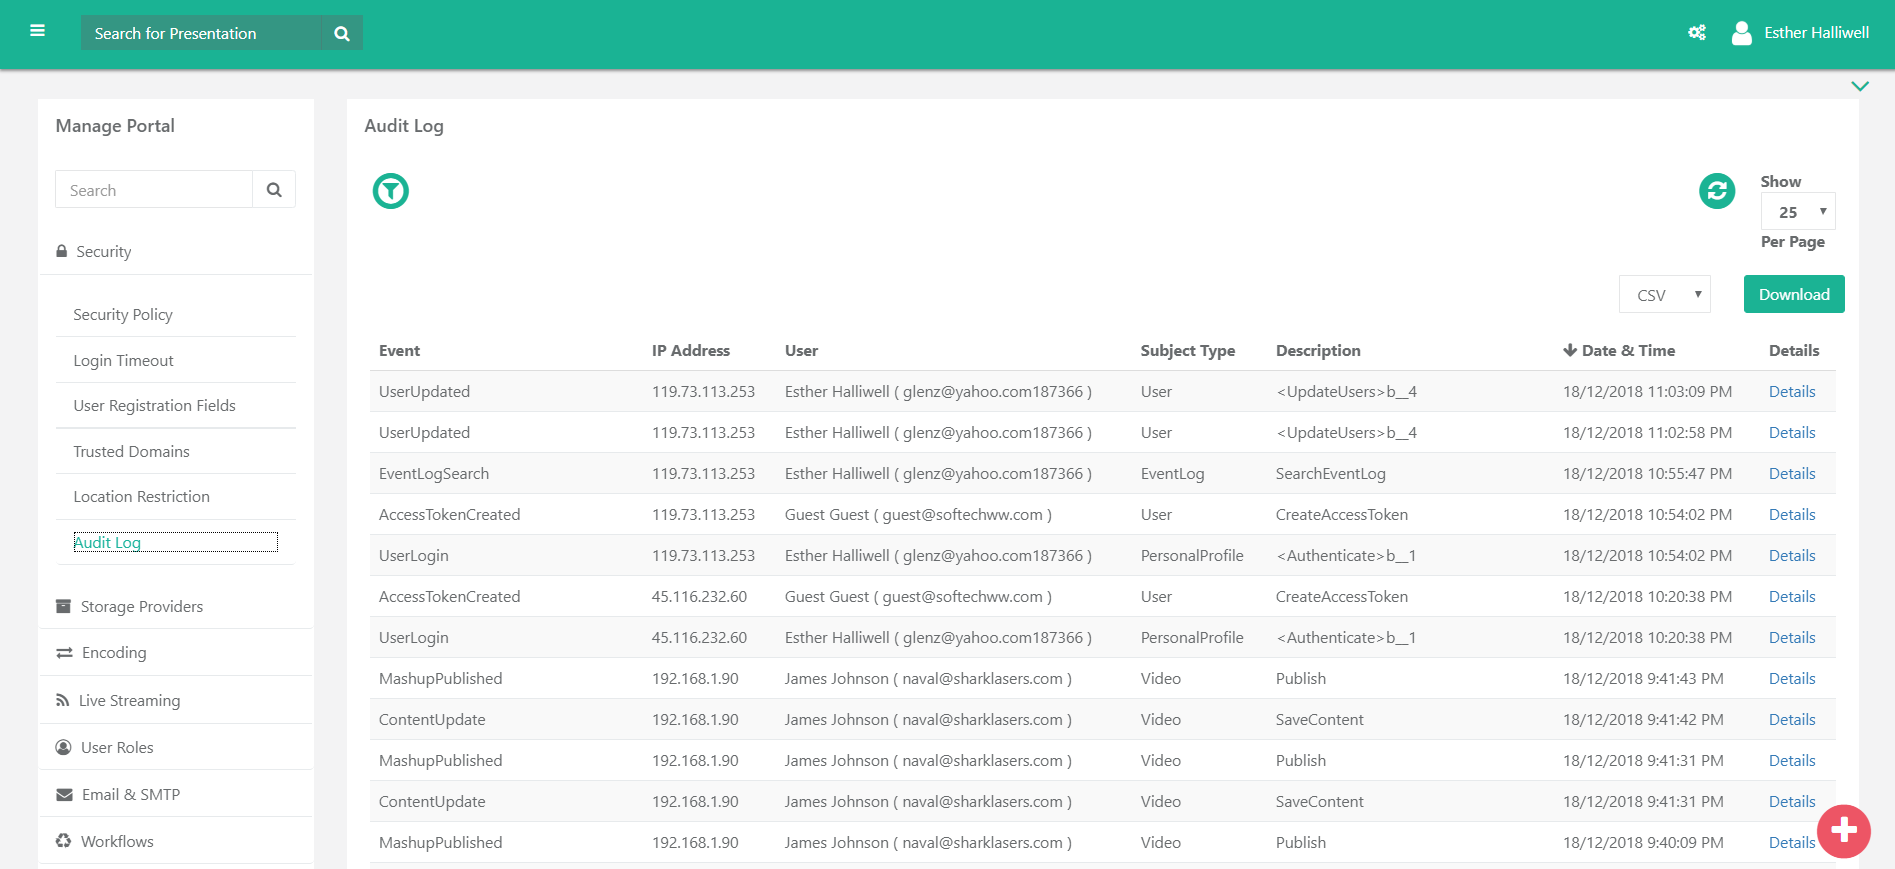 vidizmo-audit-log-screenshot